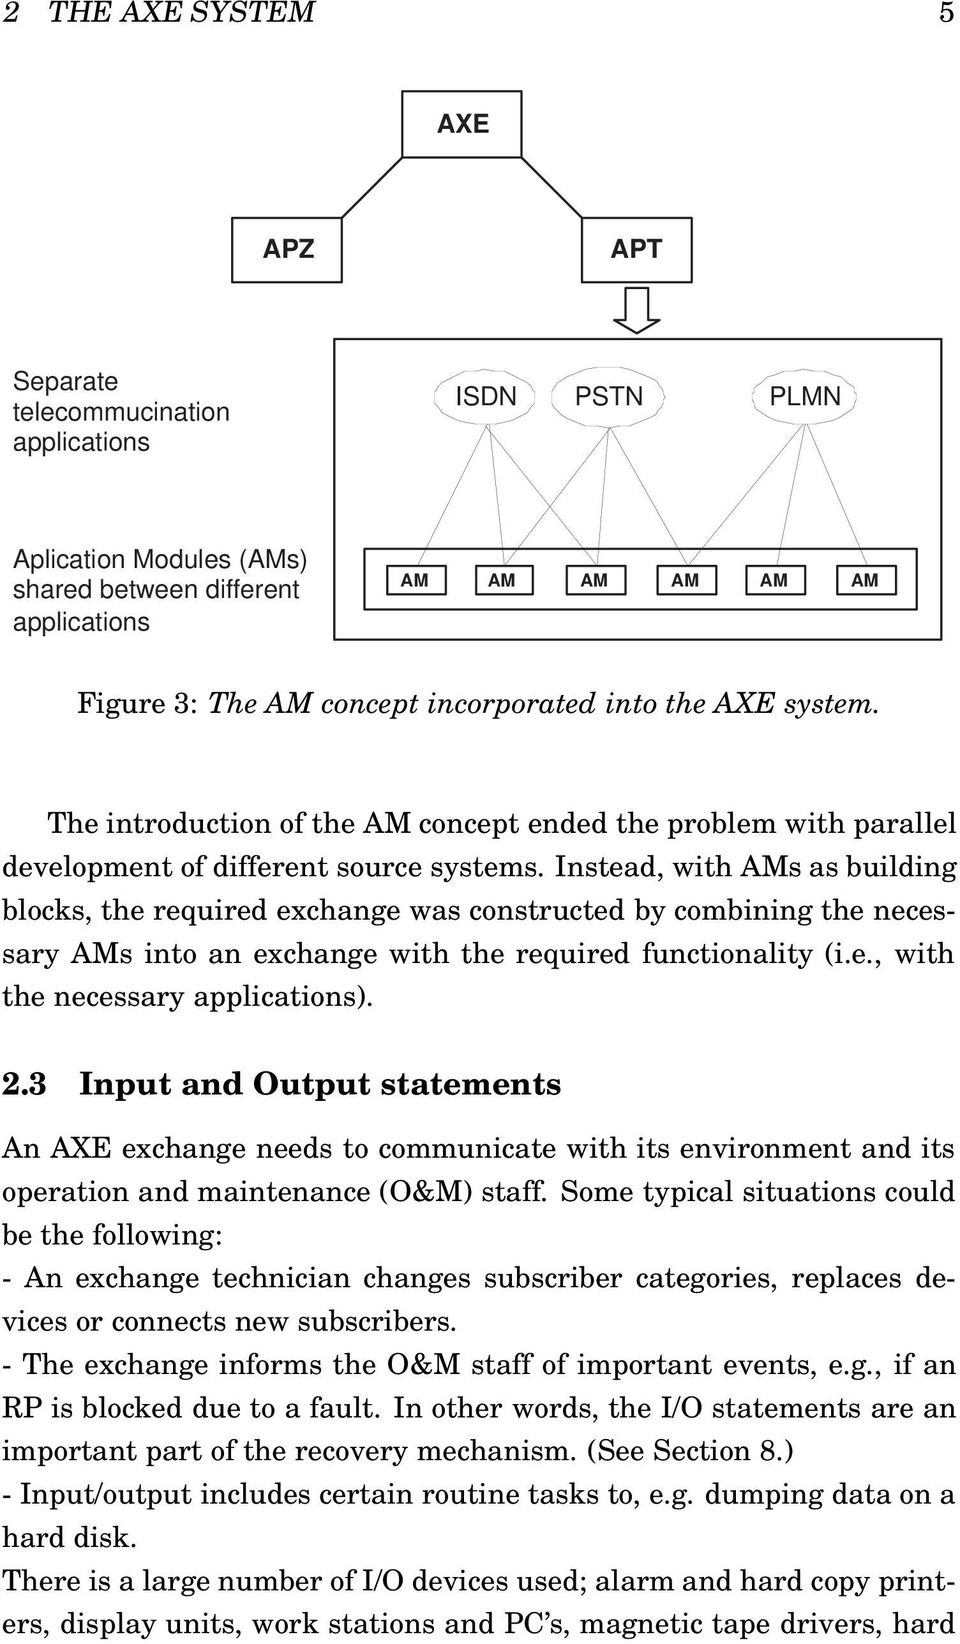 Instead, with AMs as building blocks, the required exchange was constructed by combining the necessary AMs into an exchange with the required functionality (i.e., with the necessary applications). 2.